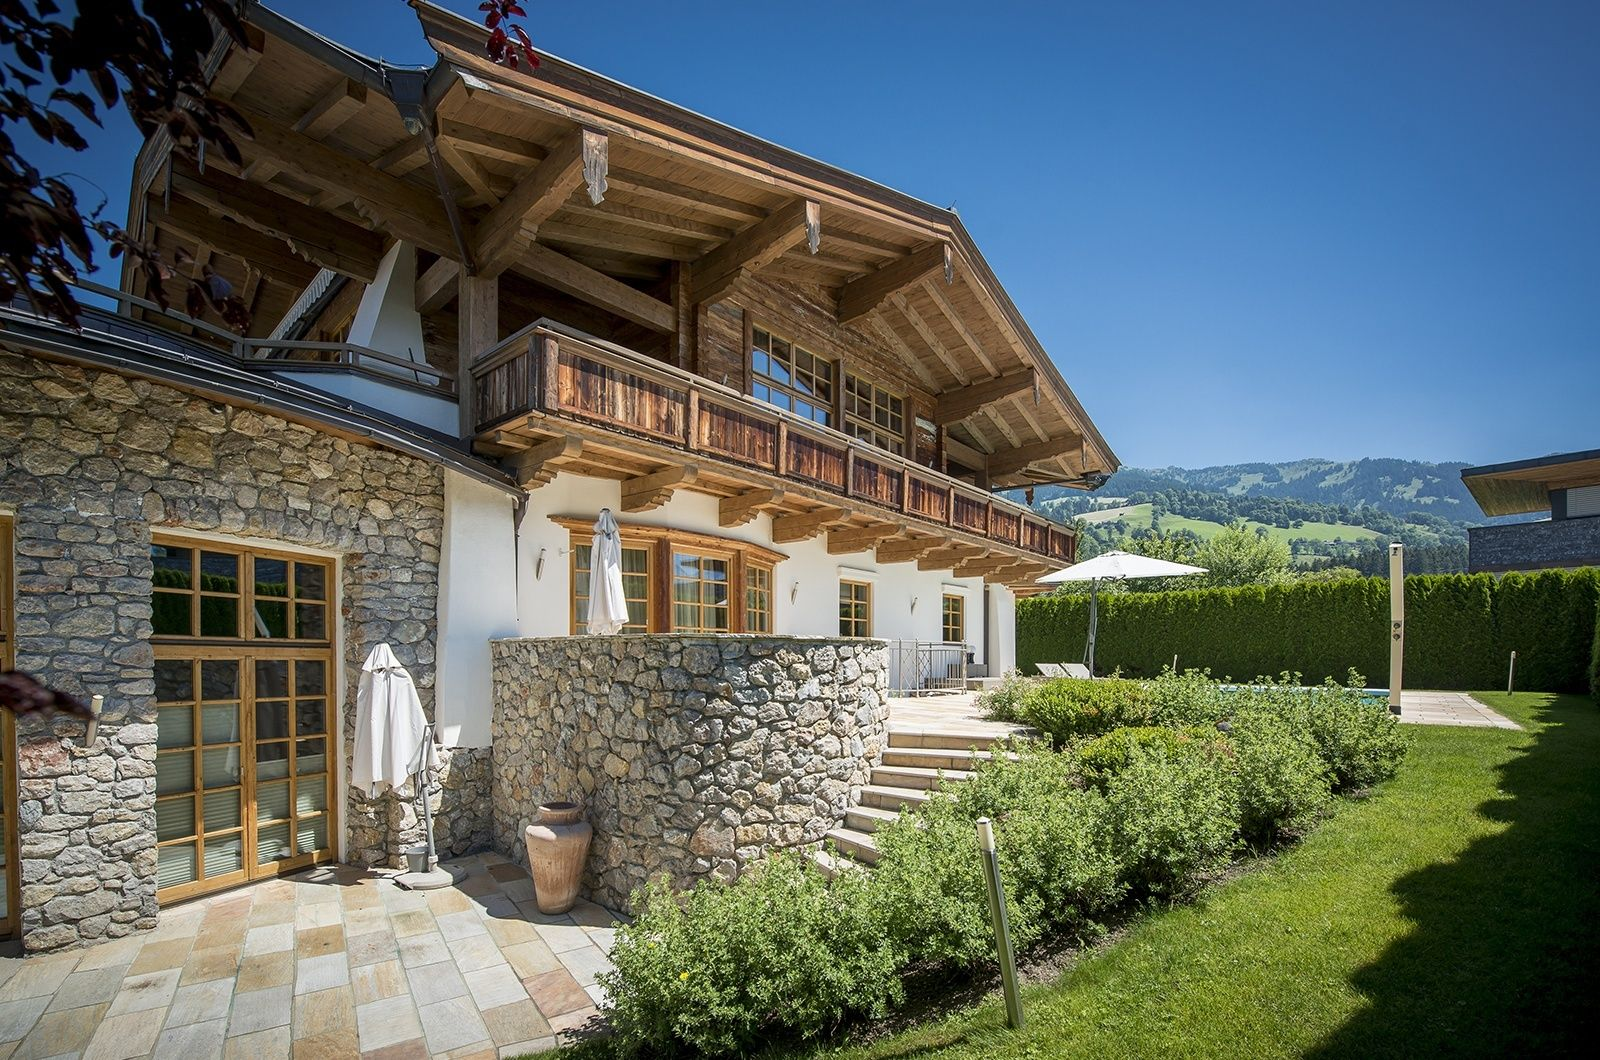 Chalet sun valley hochwertige architektur im for Moderni piani di case ranch sollevate